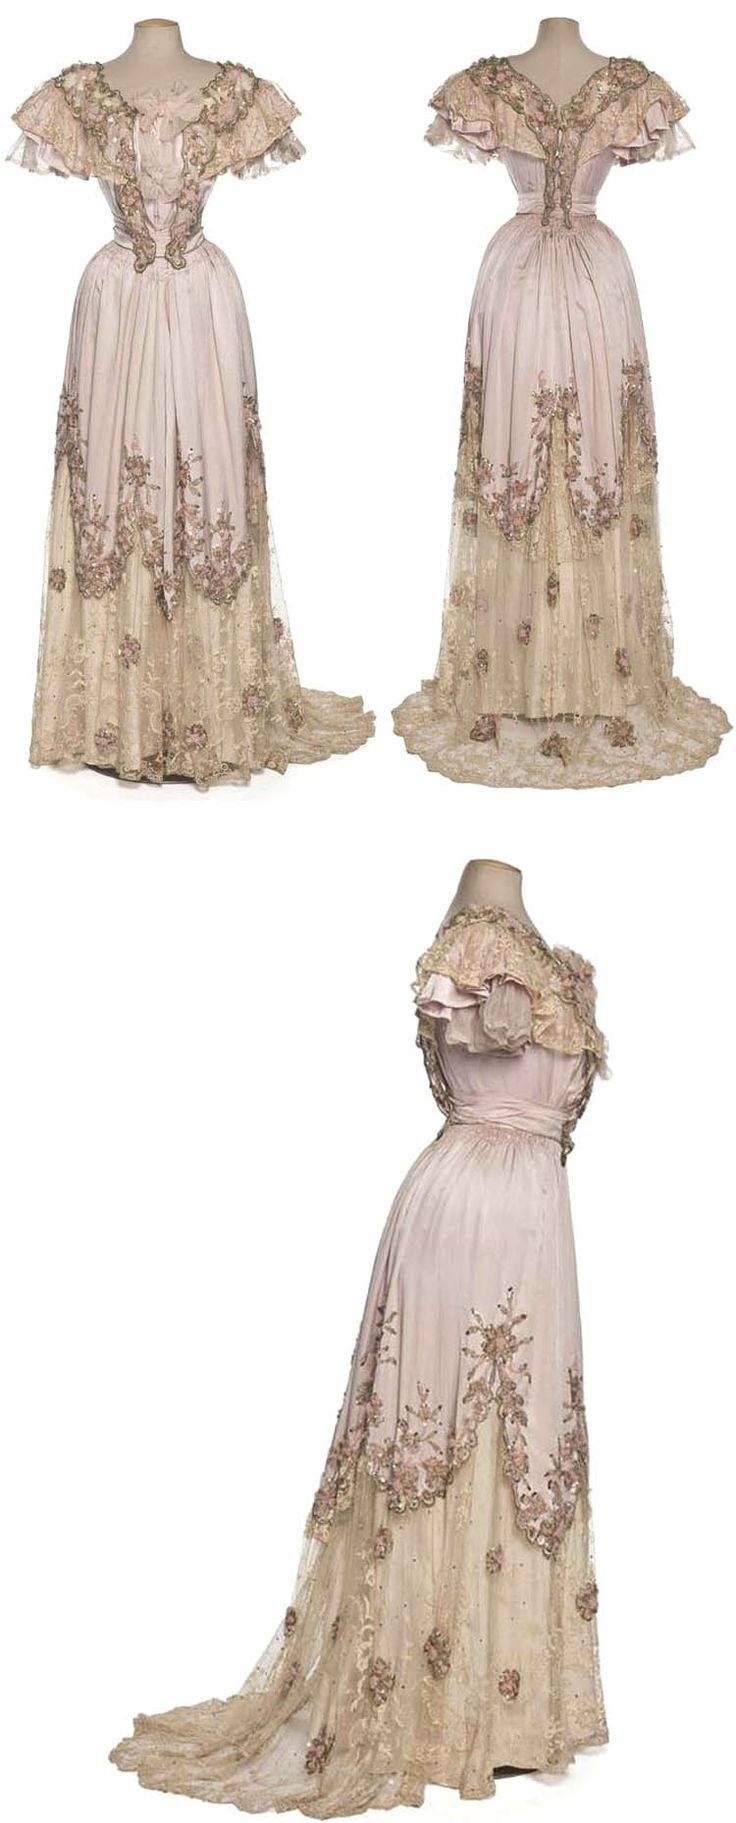 Evening gown, Clergeat, Paris, ca. 1898-1900. Silk charmeuse, embroidery with wool thread and sequins, lace frill, chiffon, and taffeta lining. Les Arts Décoratifs